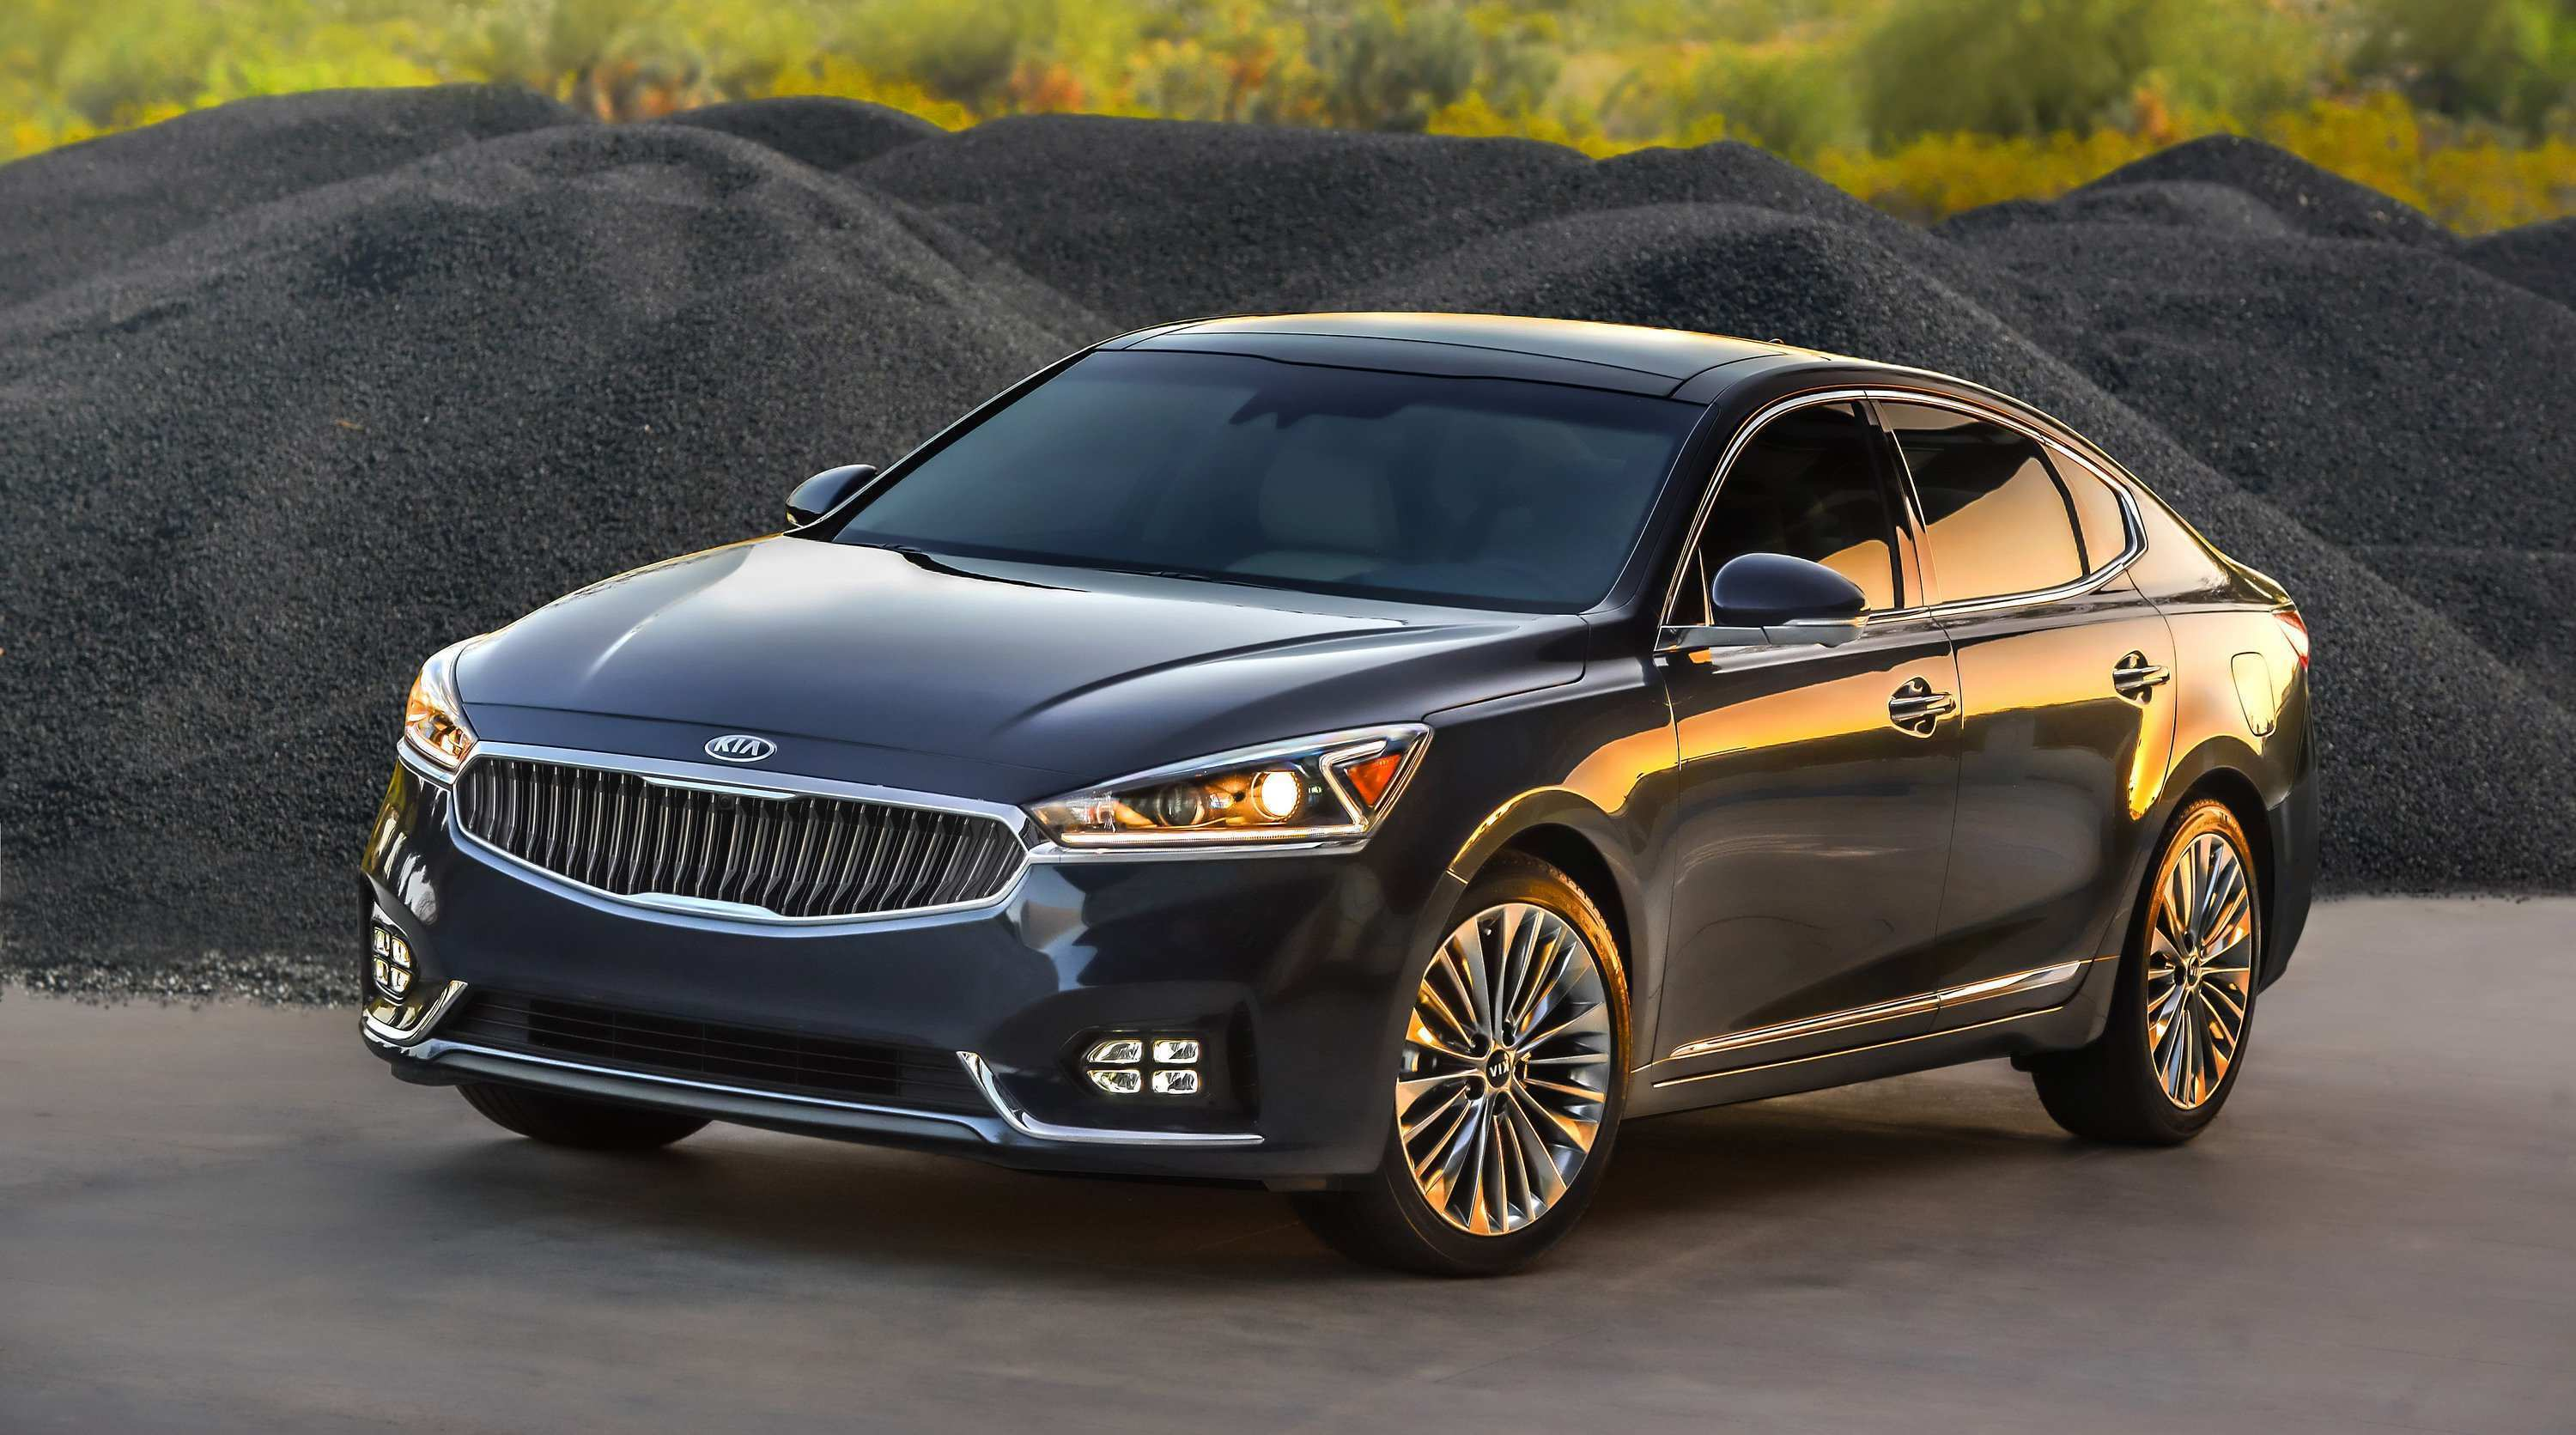 97 All New 2020 All Kia Cadenza Release